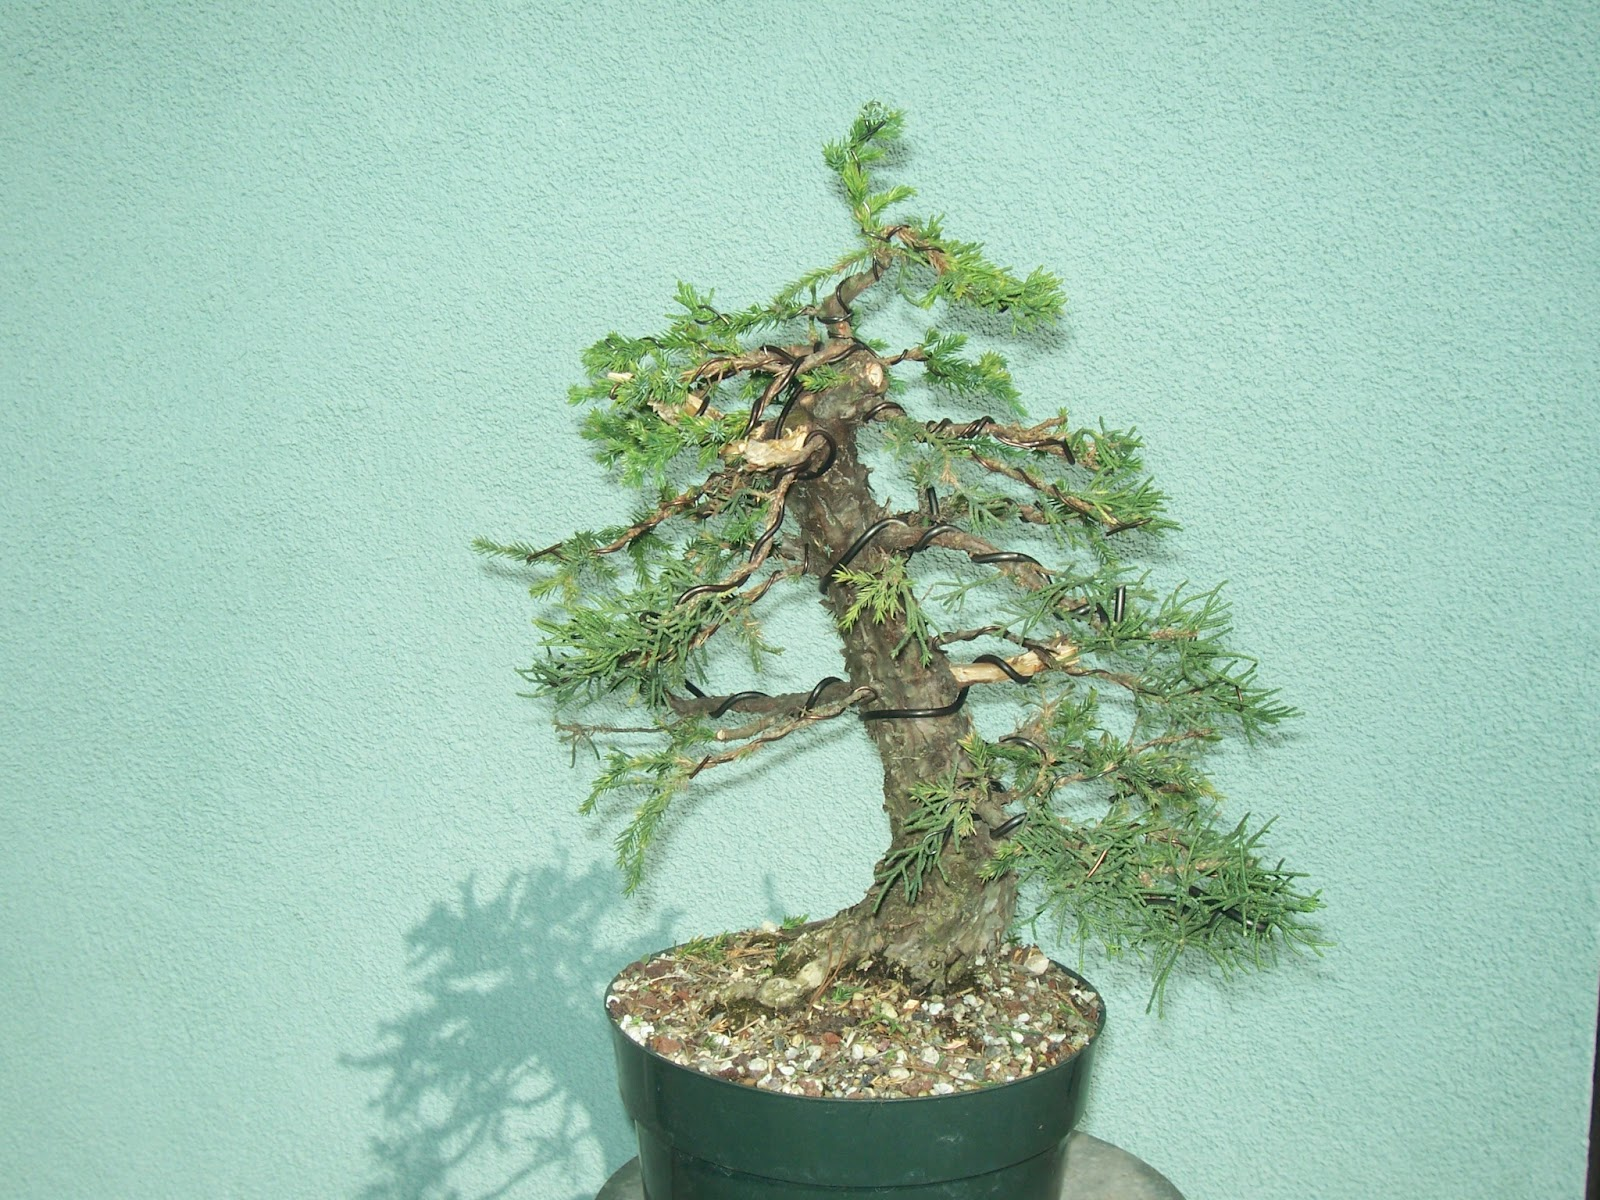 Marvelous Wiring A San Jose Bonsai Before And After Whats Happening At Wiring 101 Capemaxxcnl